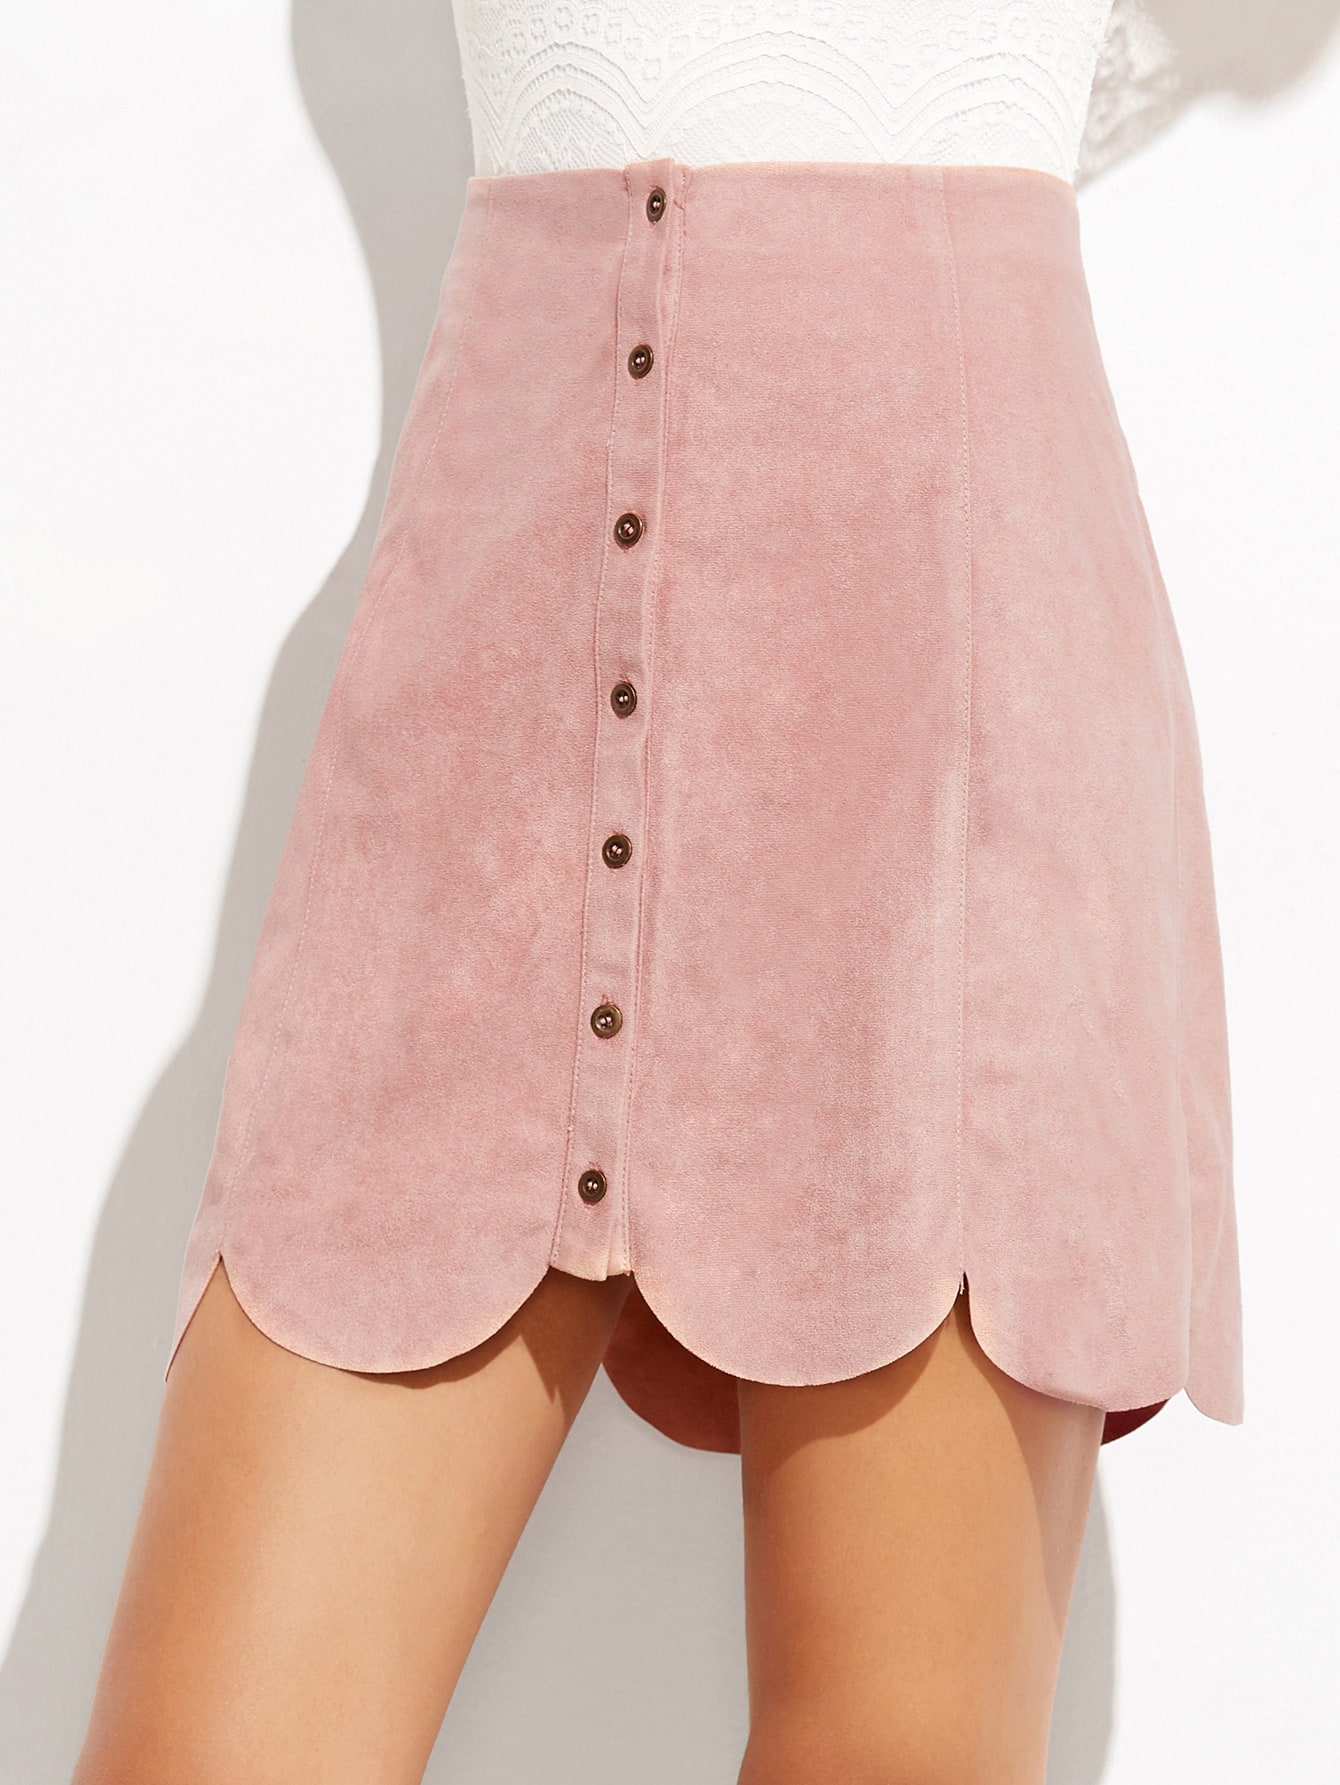 Suede Button Up Scallop Hem Skirt ruffle waist zip back scallop hem embroidered gingham skirt